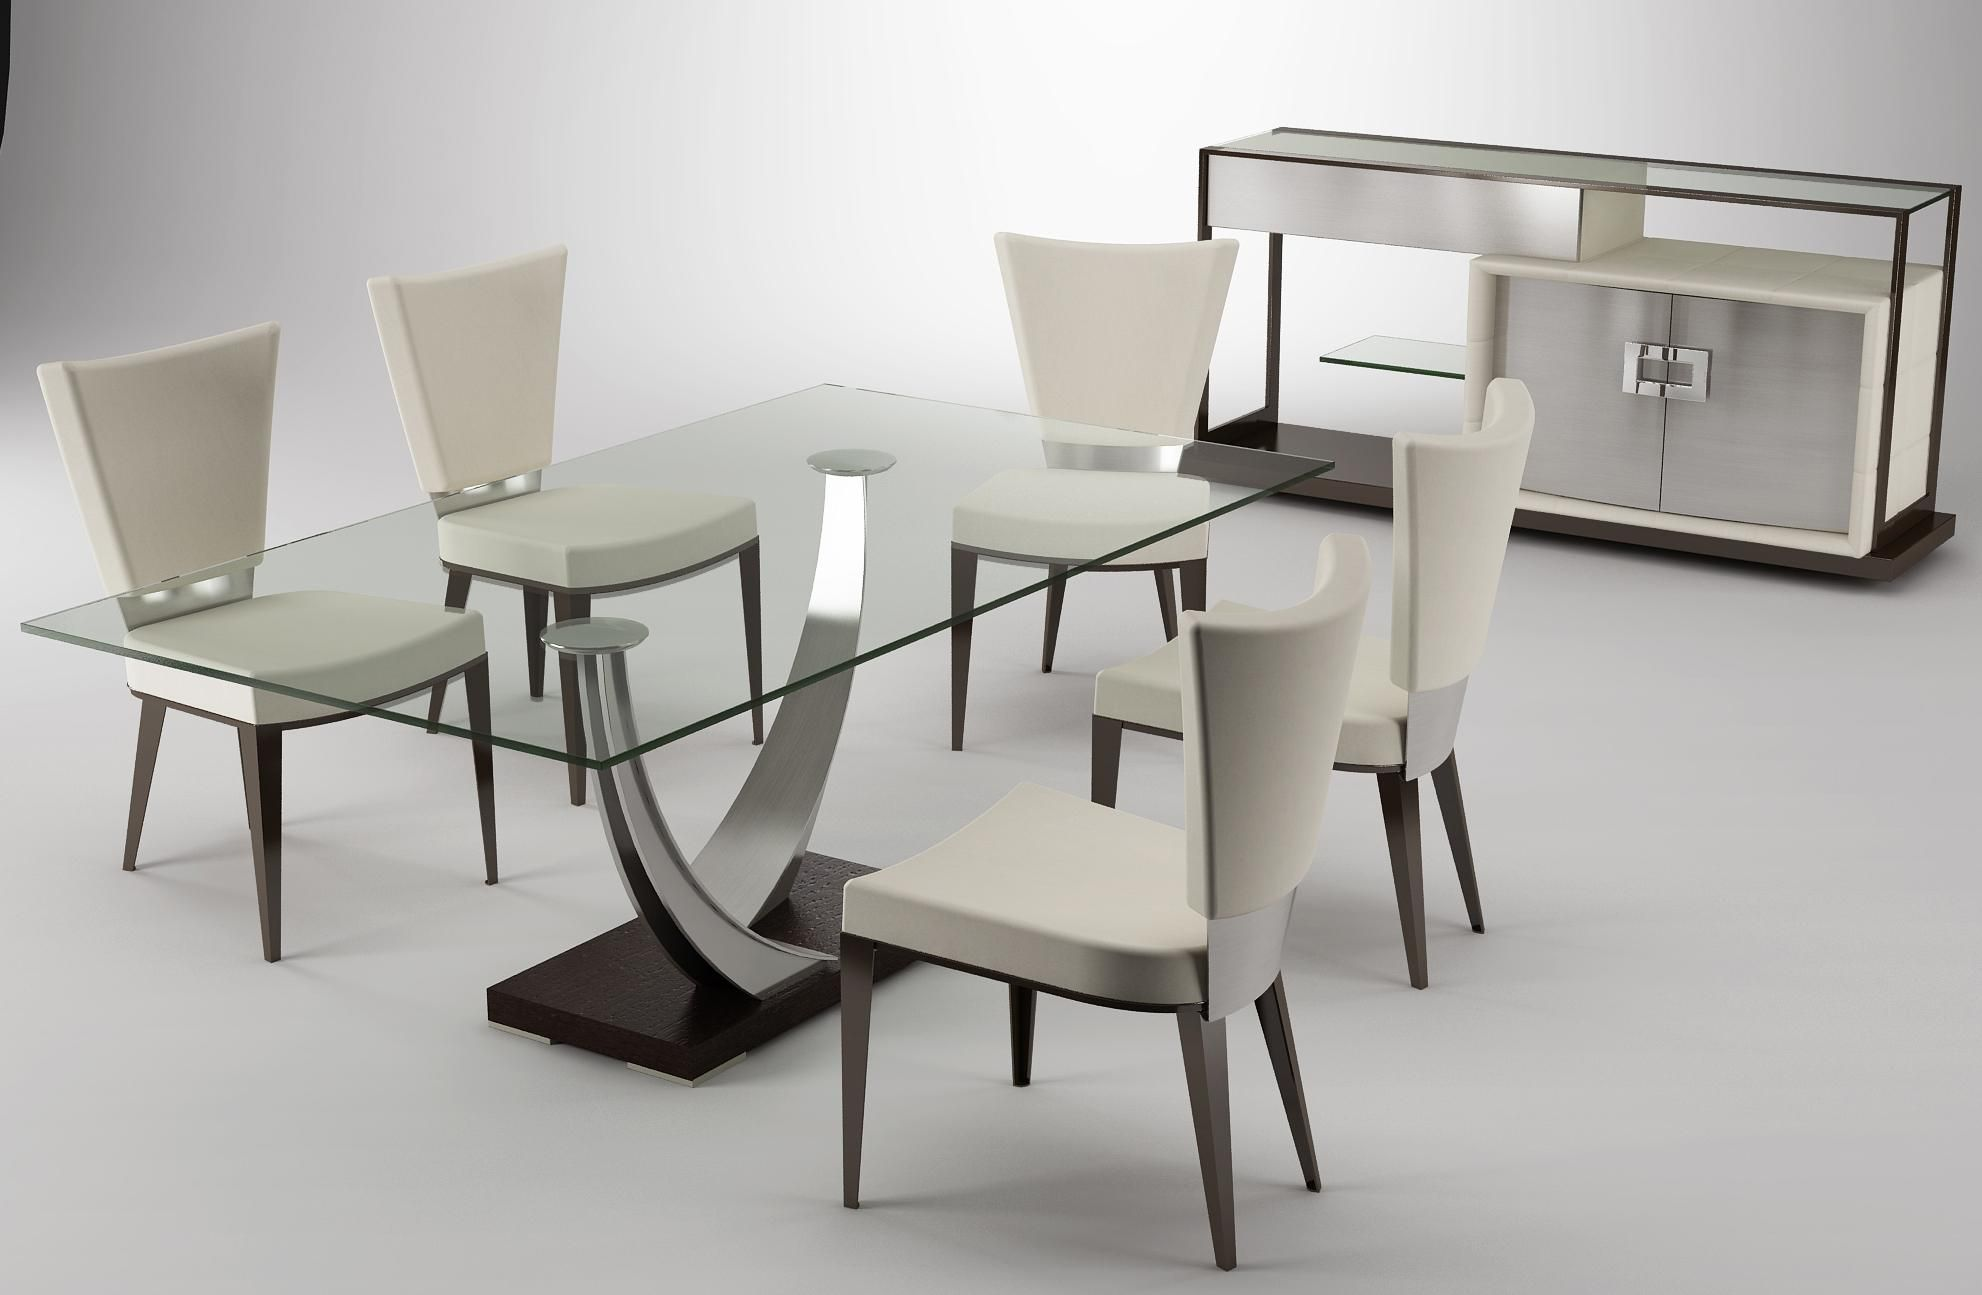 Amazing modern stylish dining room table set designs elite tangent glass top furniture stores Dining room furniture glass